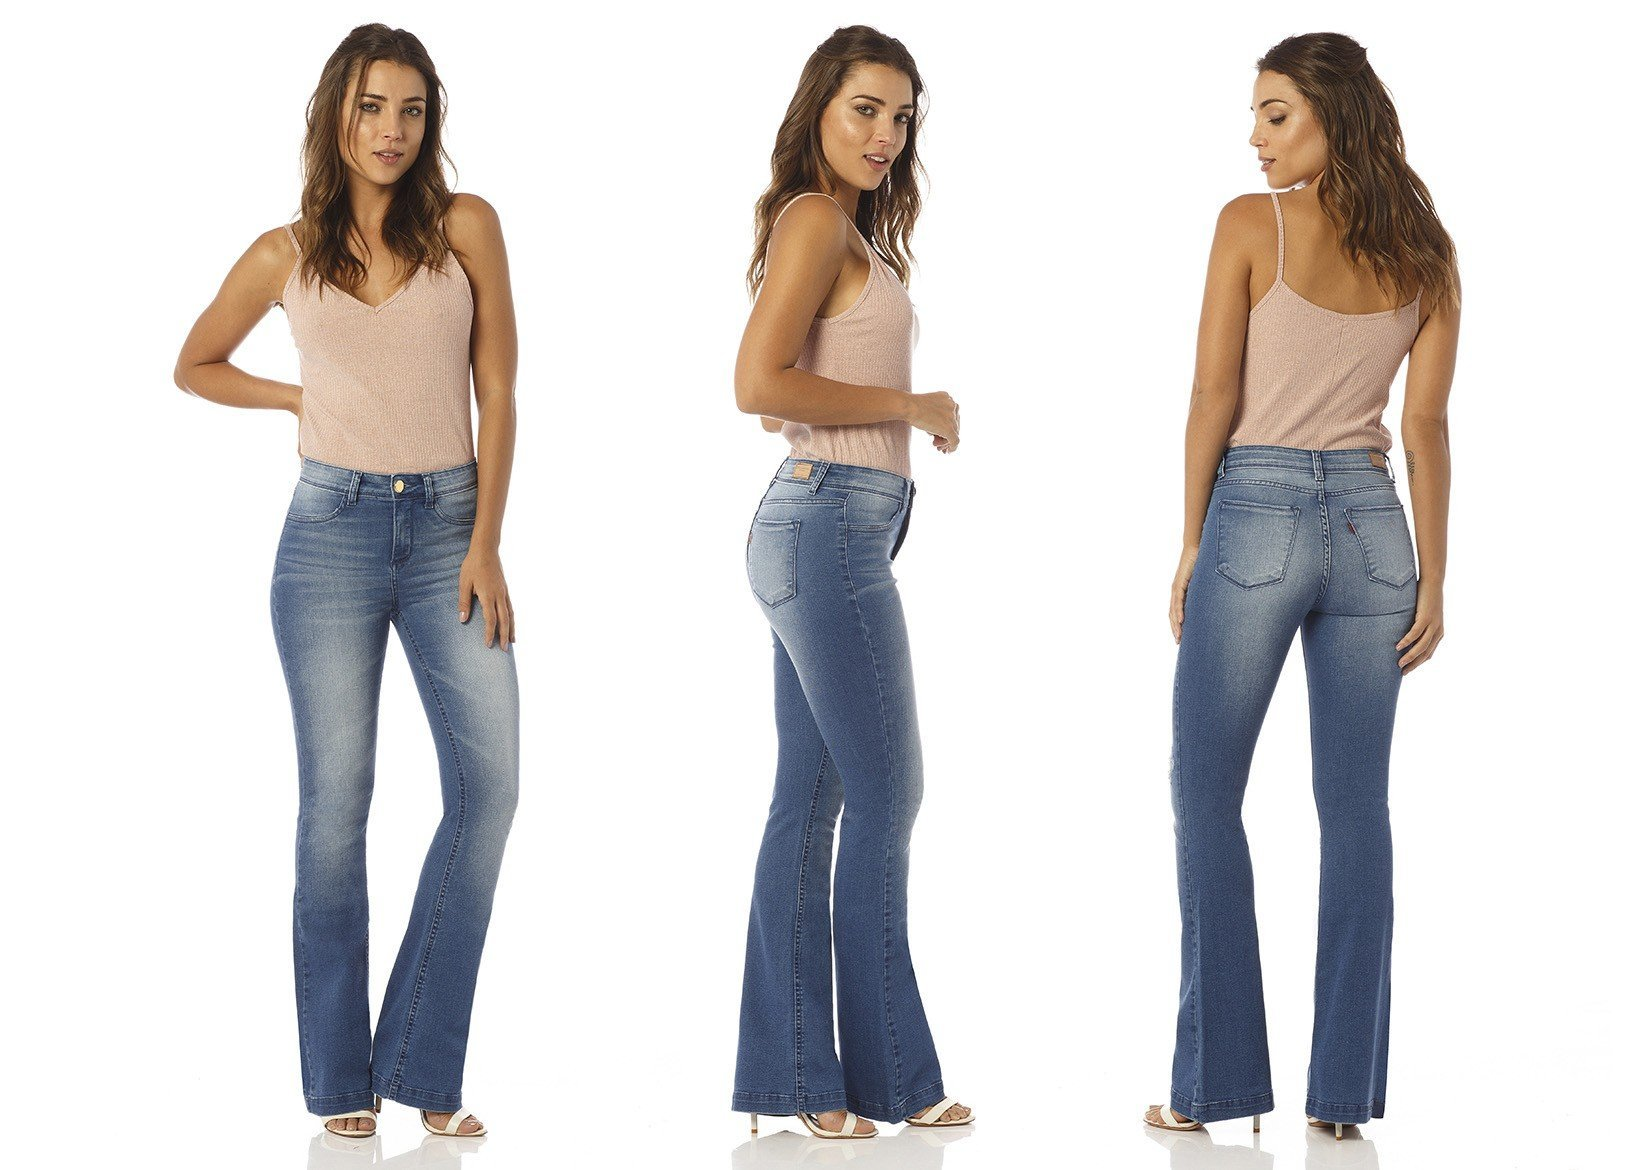 calca flare media escura dz2439 denim zero descricao